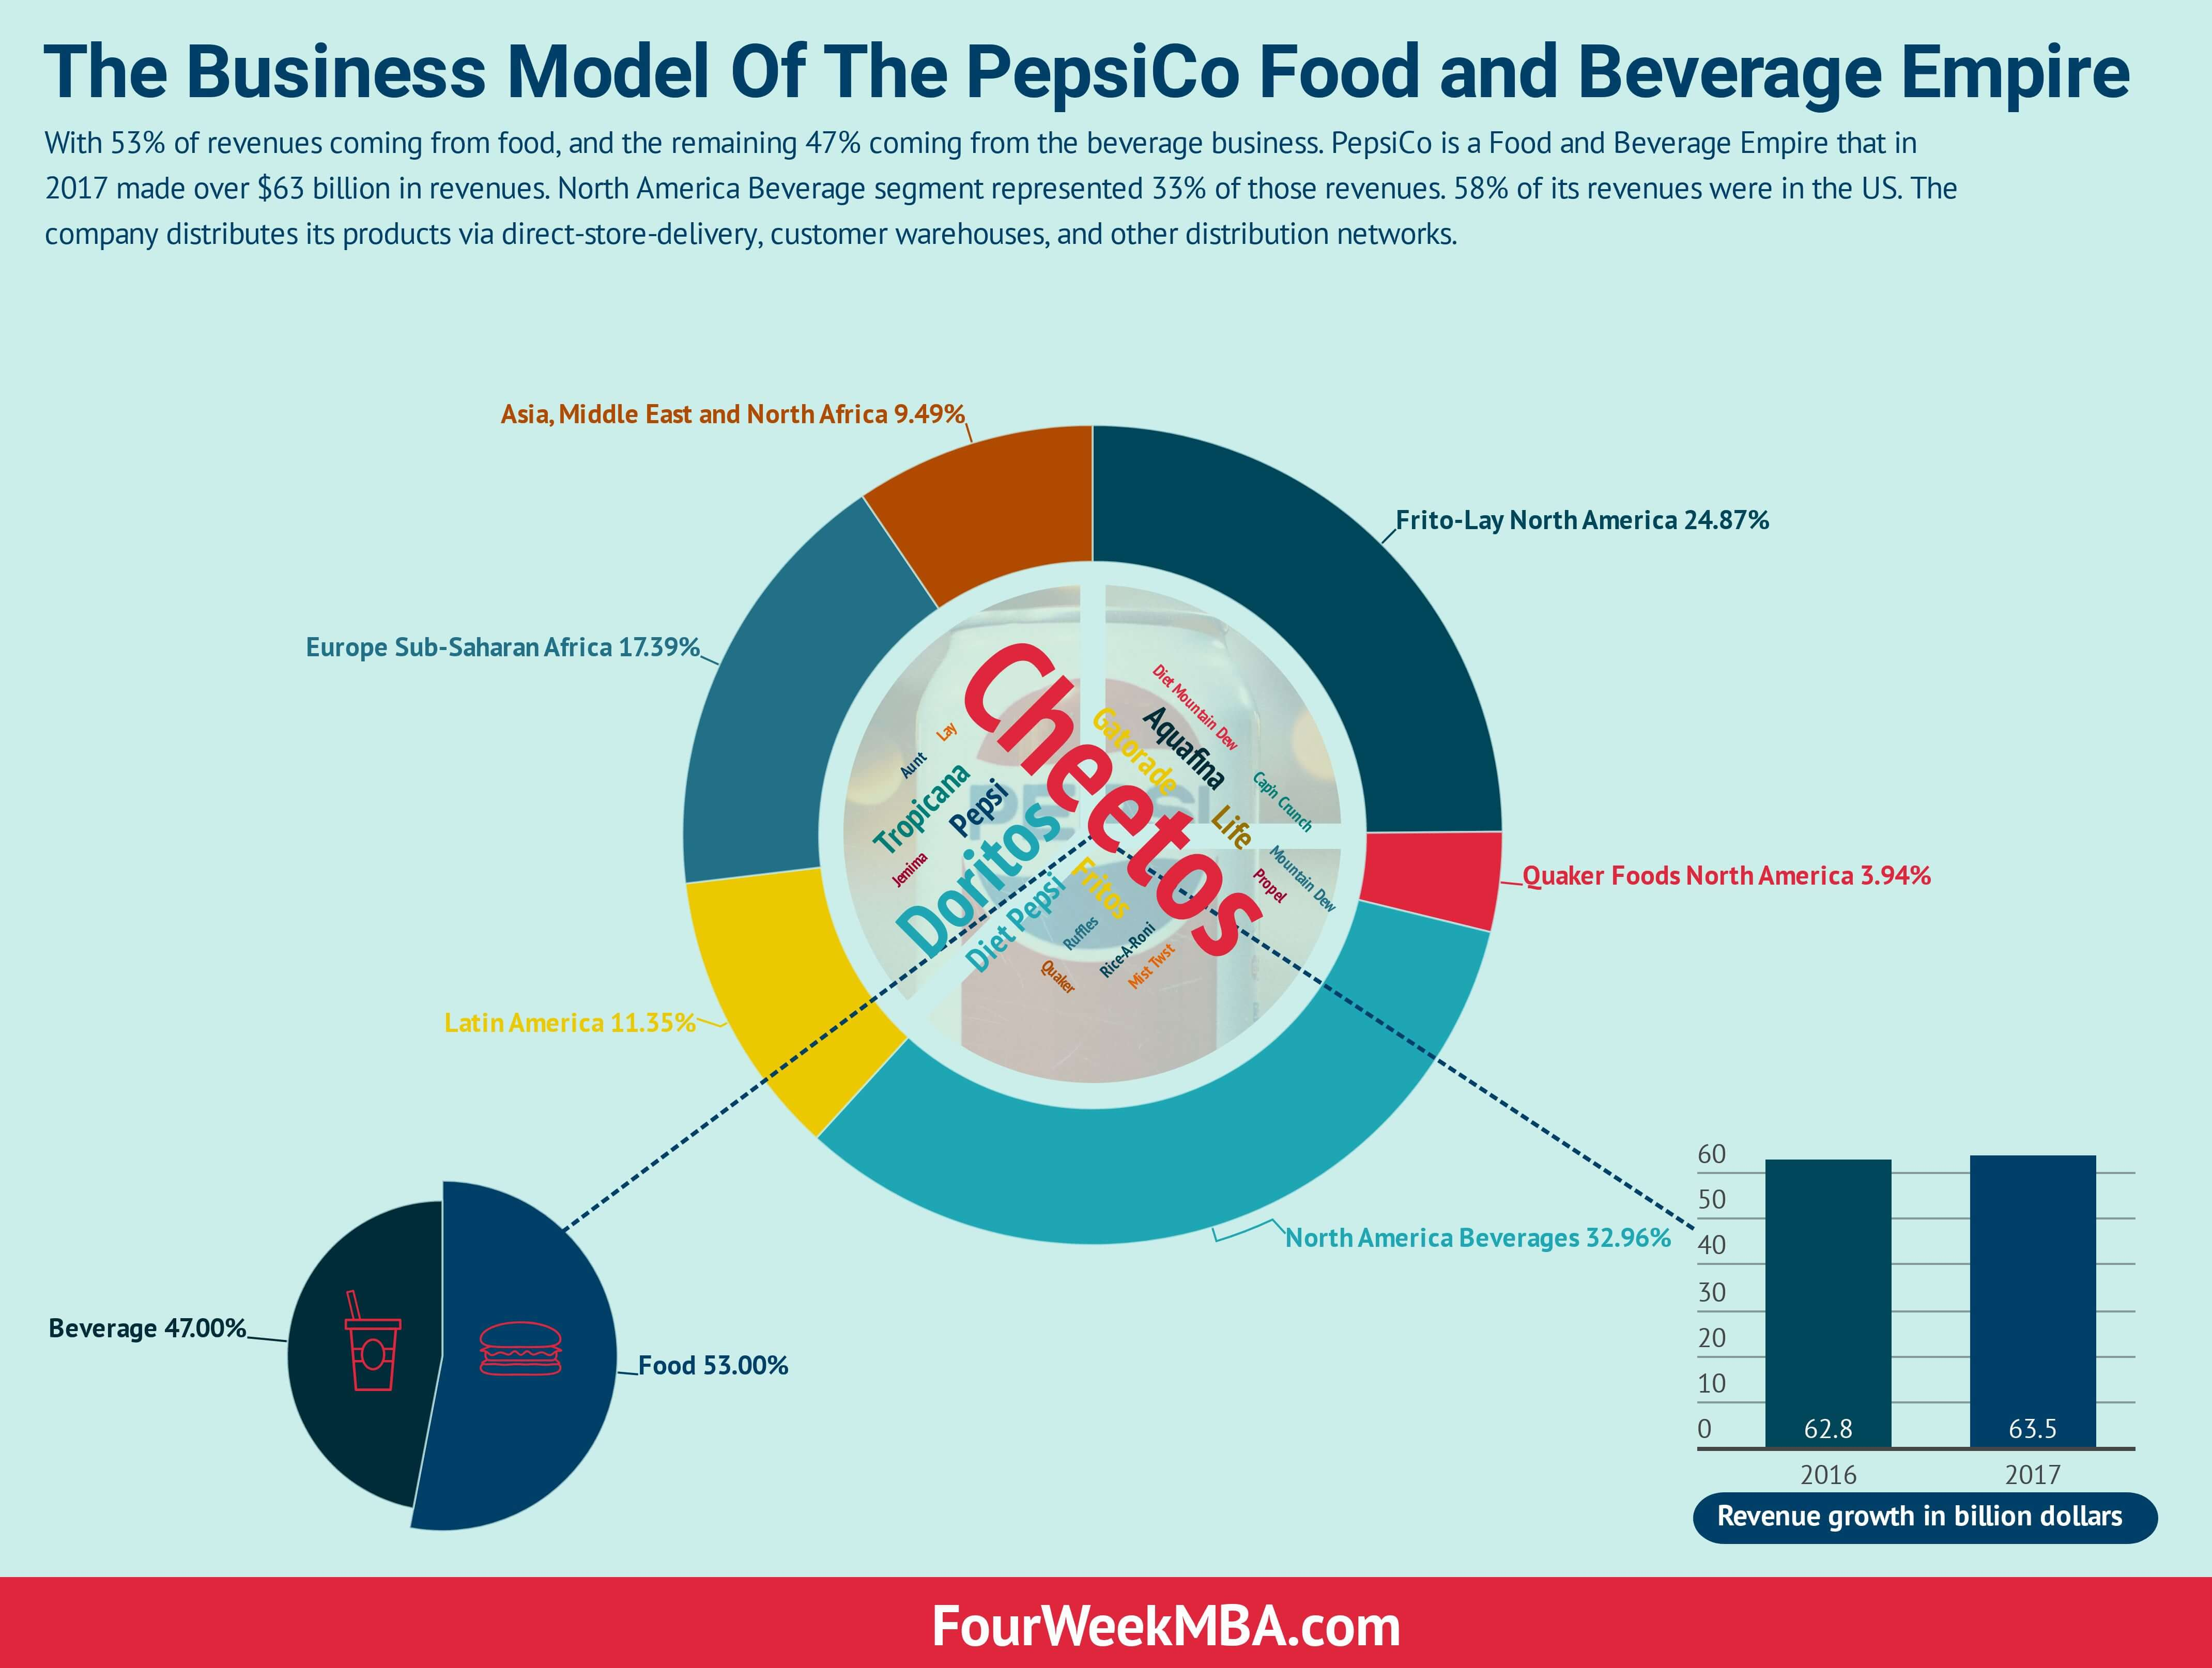 The Business Model Of The PepsiCo Food and Beverage Empire